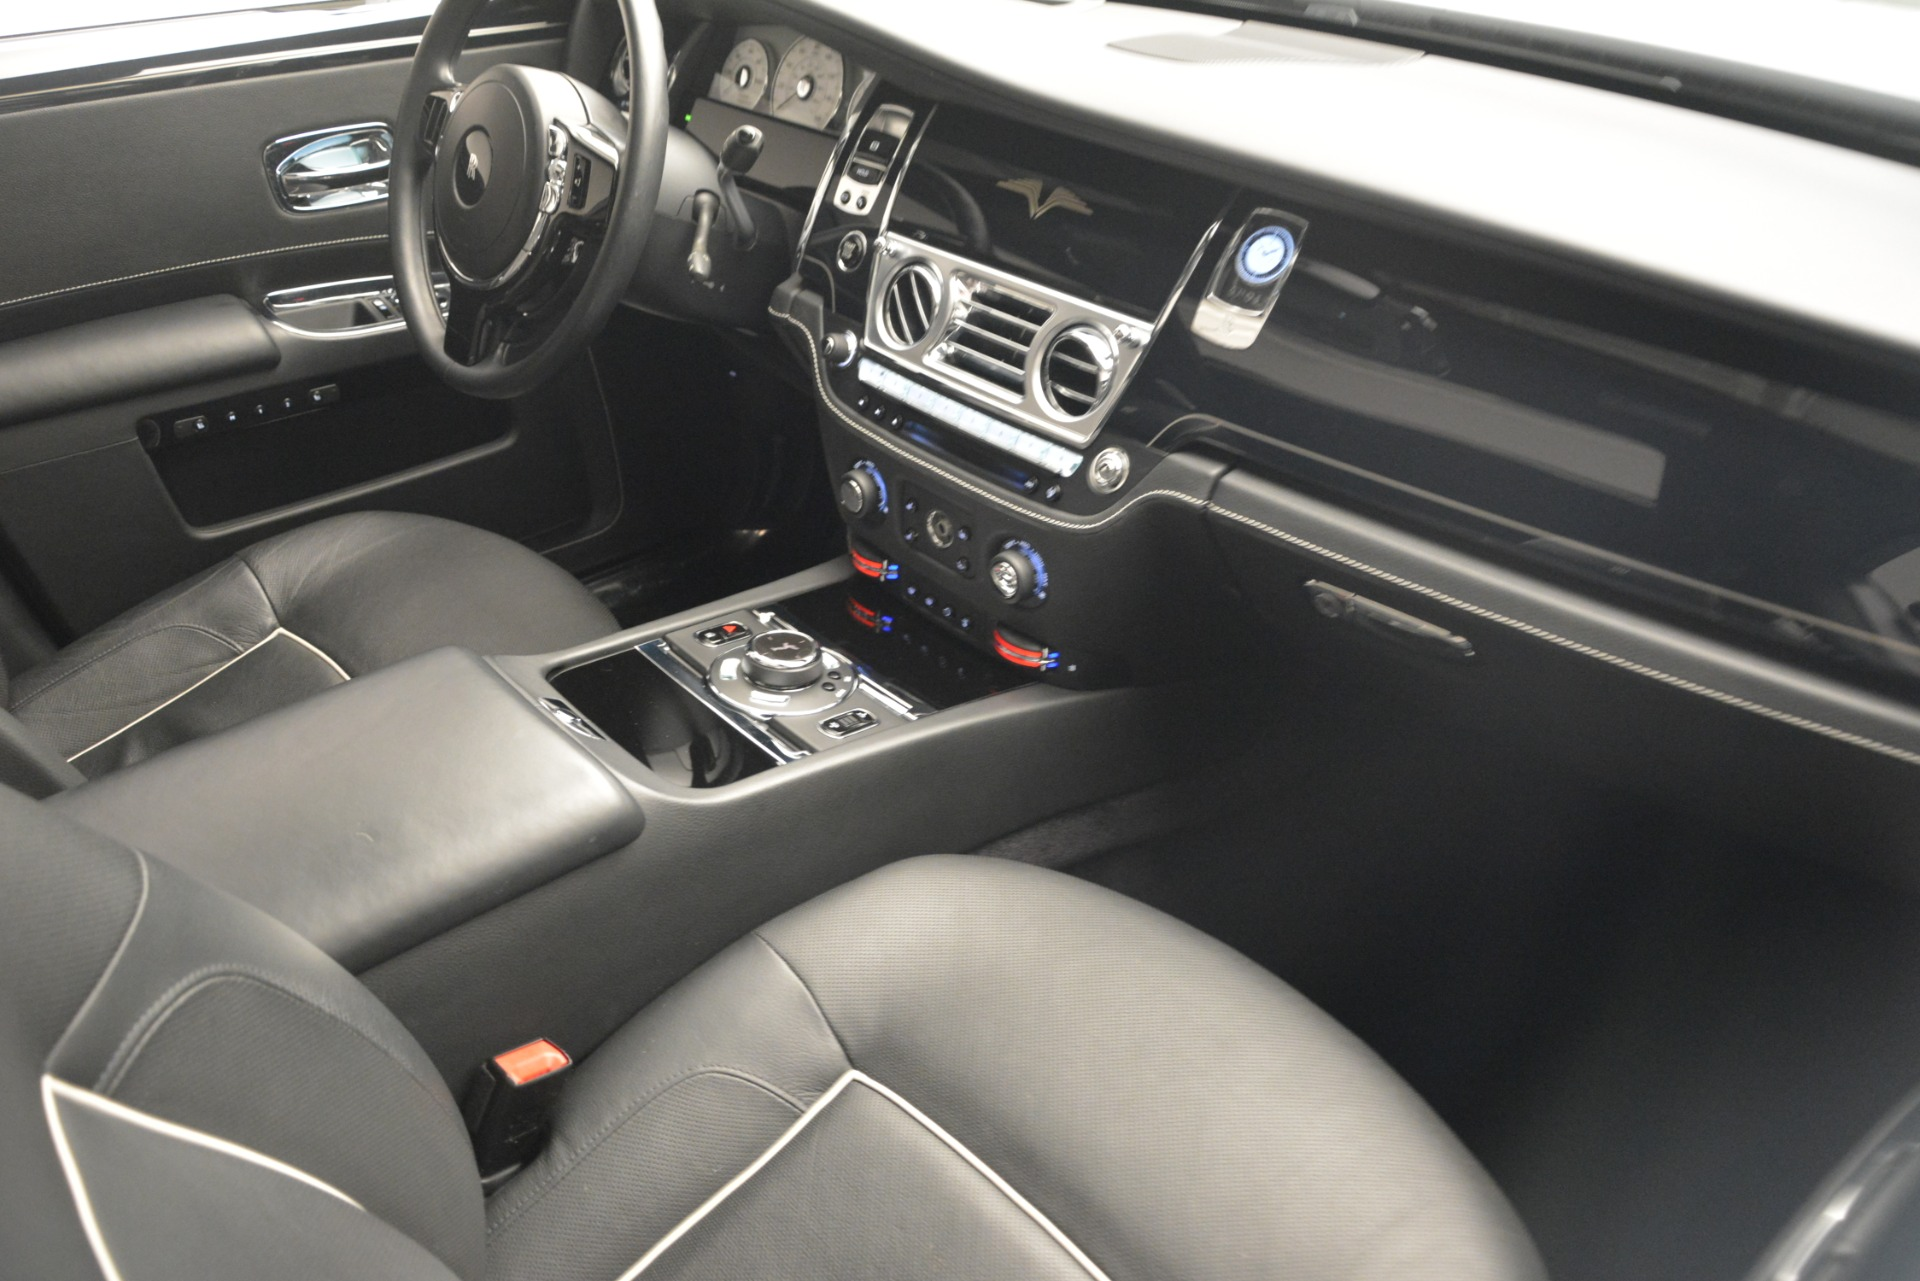 Used 2014 Rolls-Royce Ghost V-Spec For Sale In Westport, CT 2989_p29